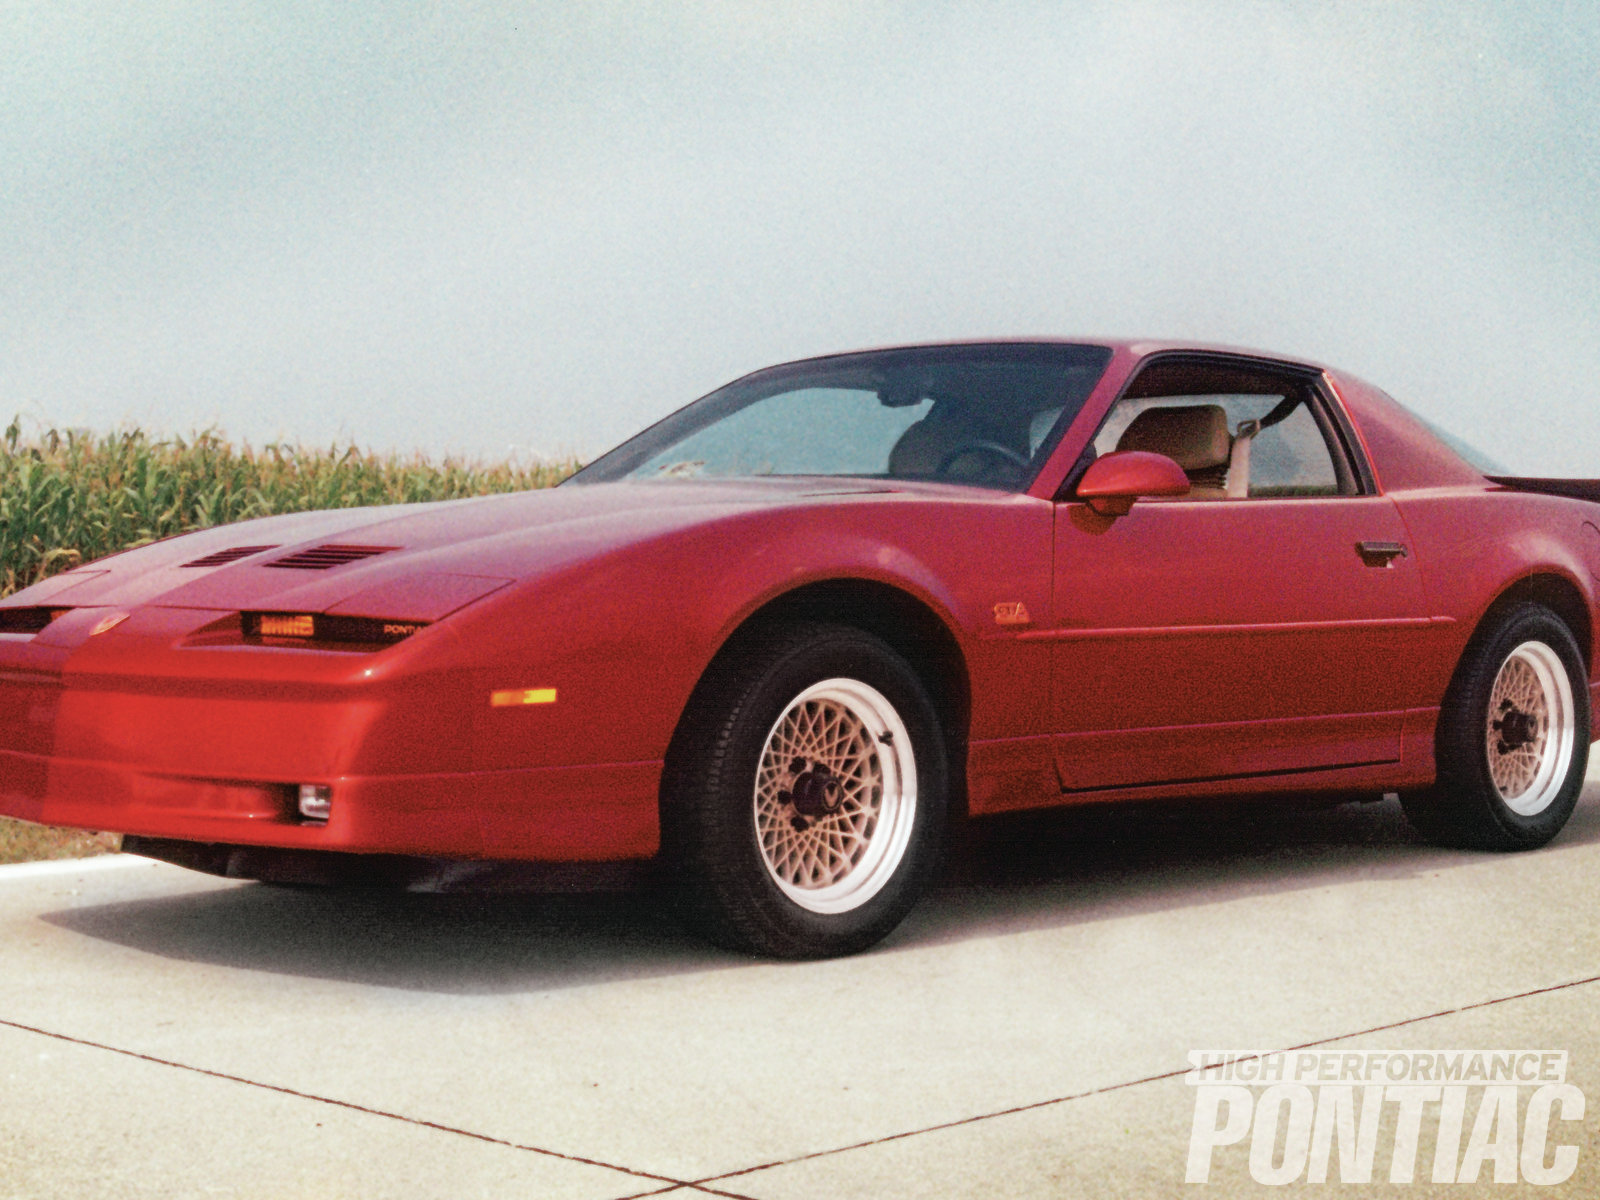 Vacuum Diagram For 87 Trans Am Gta Wiring 41 Images 1986 Chevy C20 Schematic Pontiac Firebird Coupe 1987